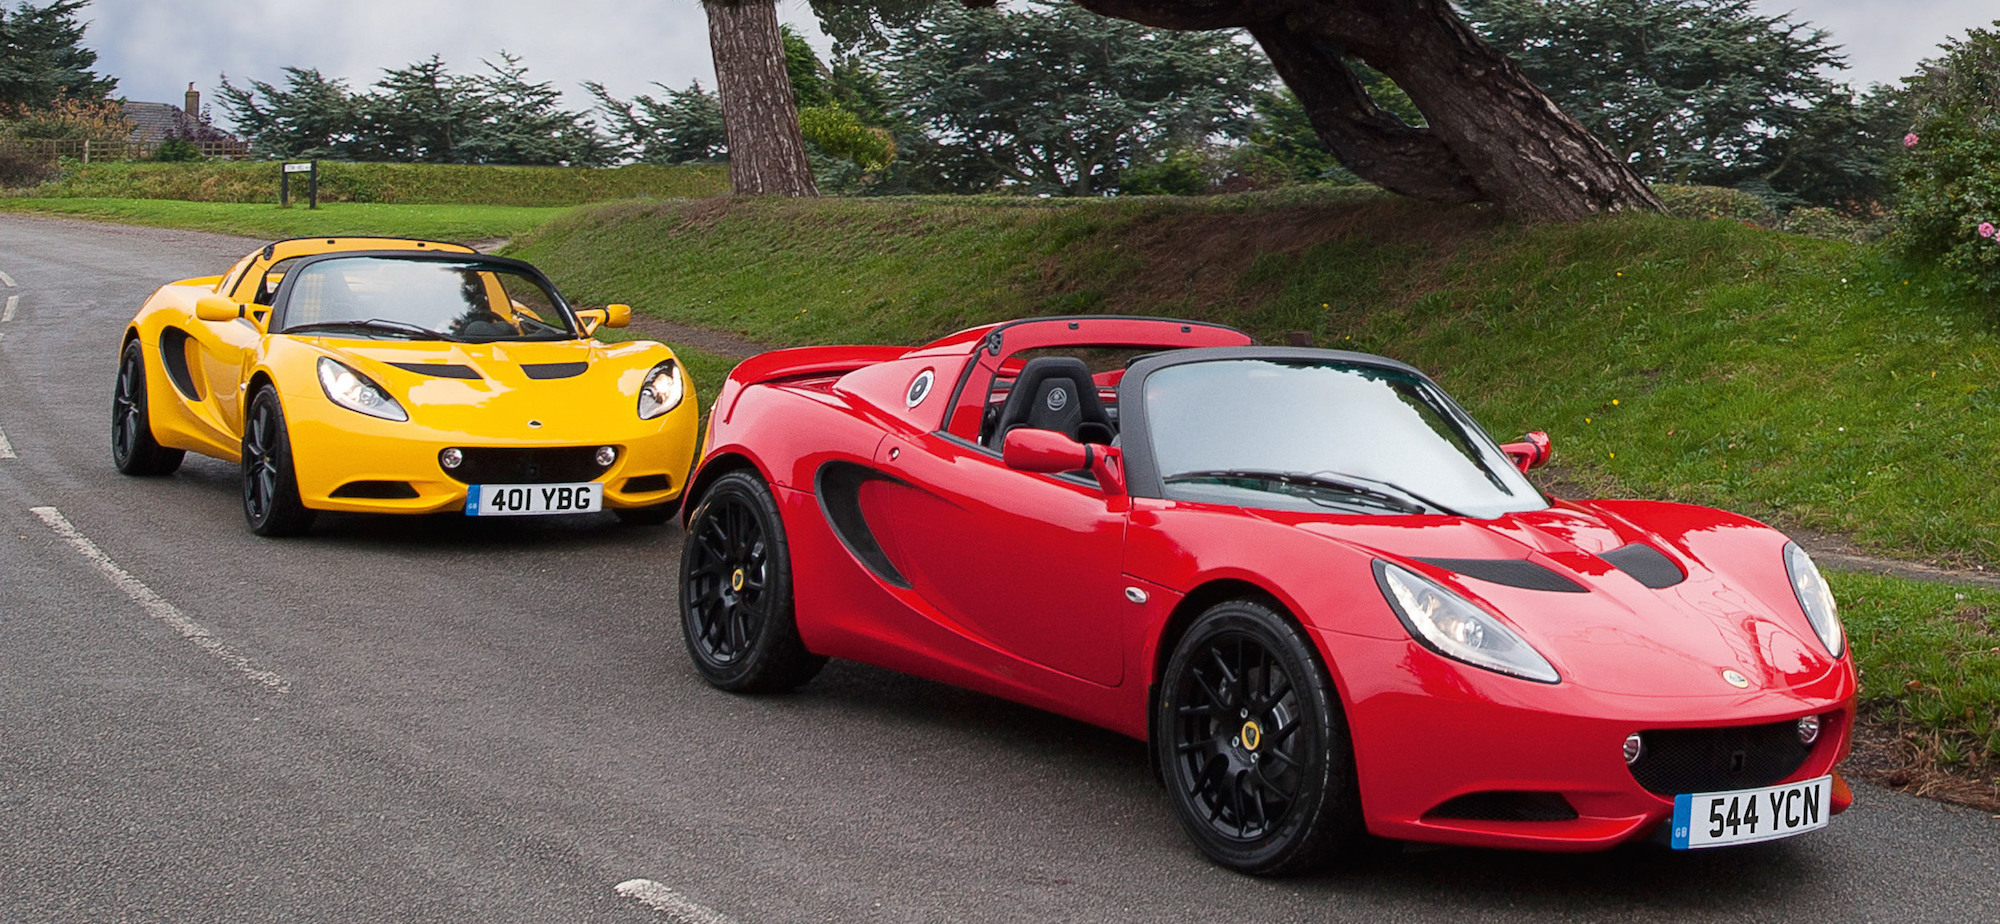 2016 Lotus New Cars Photos 1 Of 4